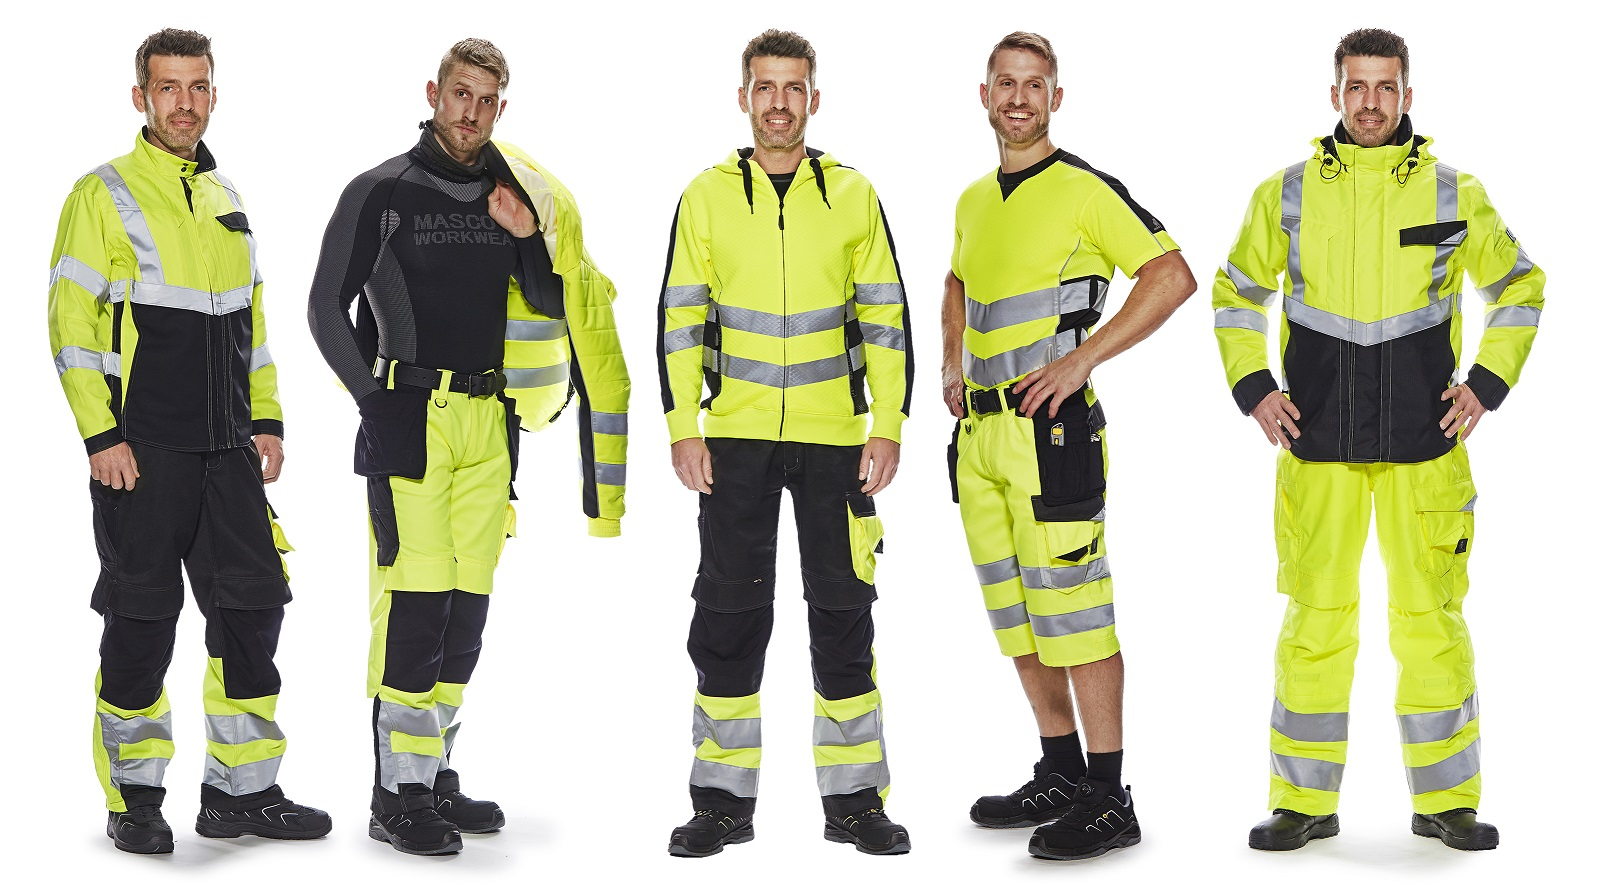 Best Places to Buy Flame Resistant workwear in Columbus, Ohio.